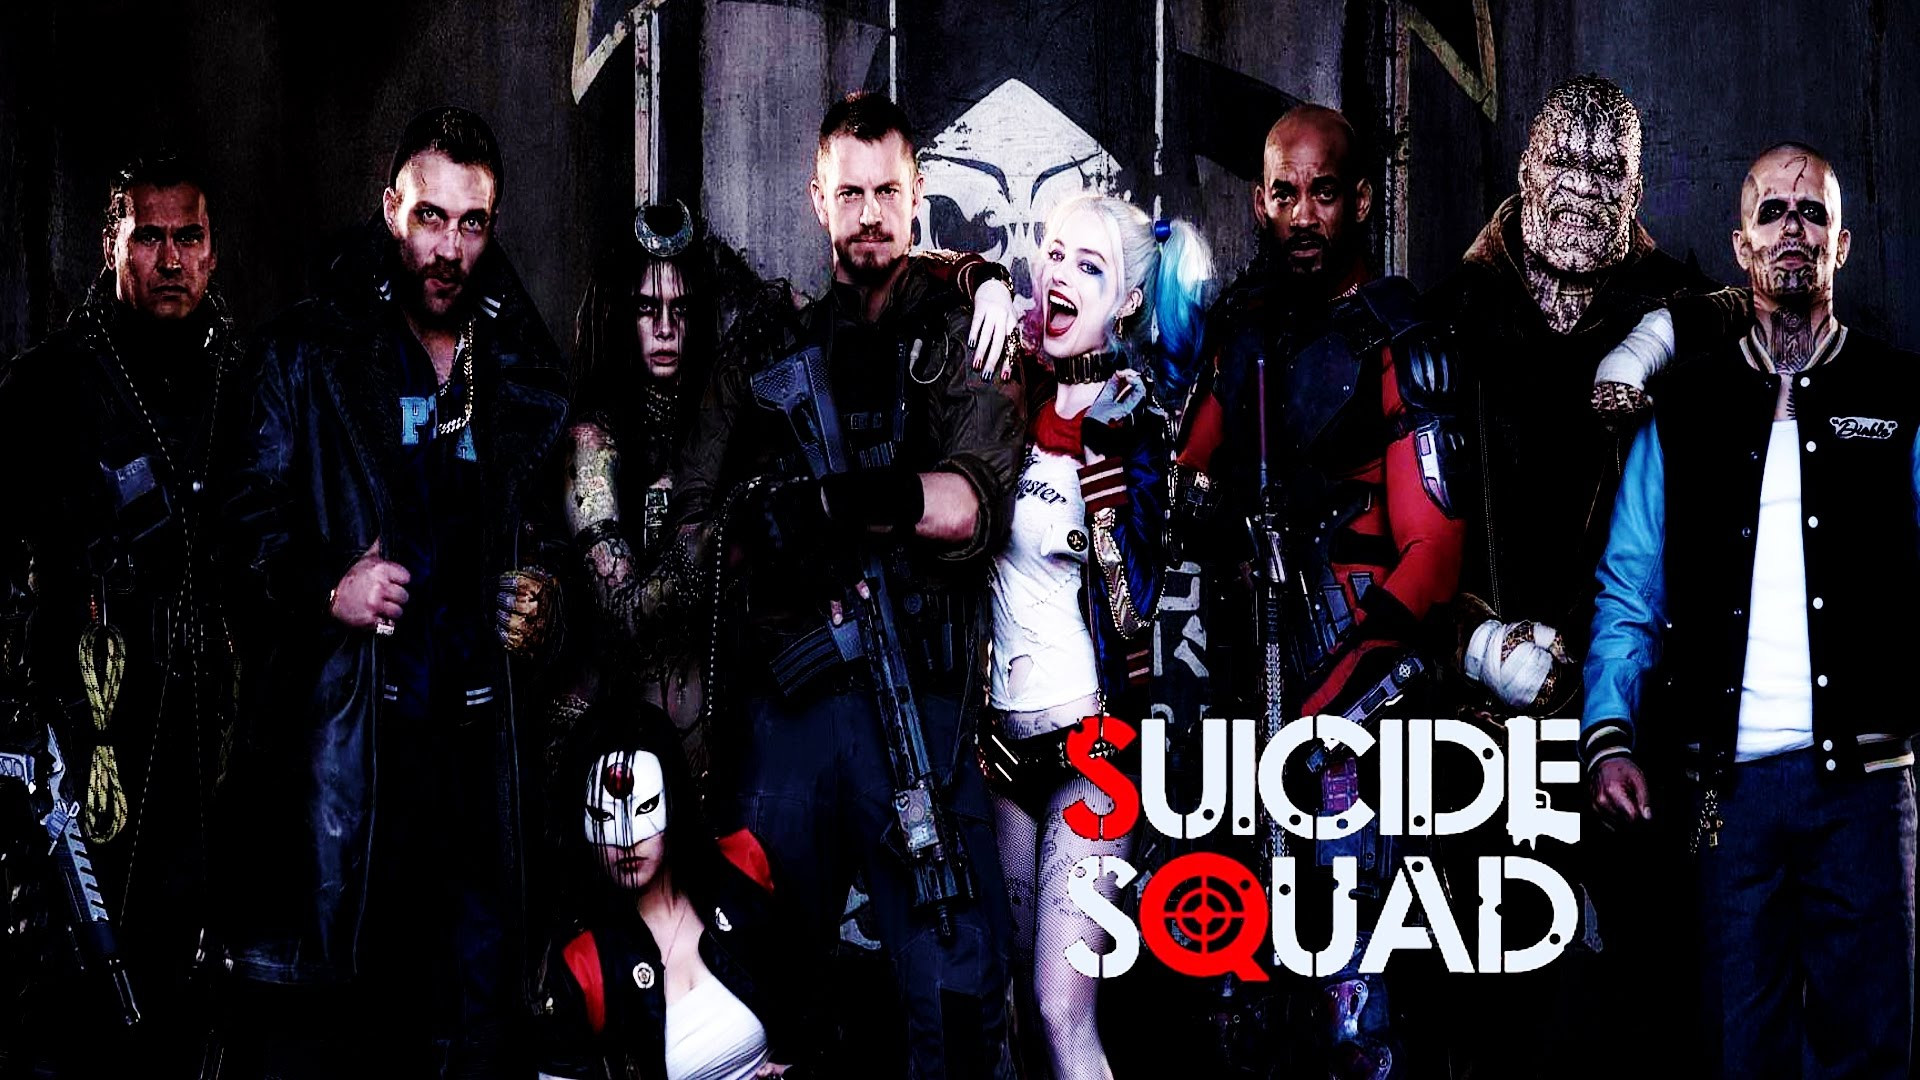 Suicide Squad Full HD Wallpaper and Background | | ID:776924